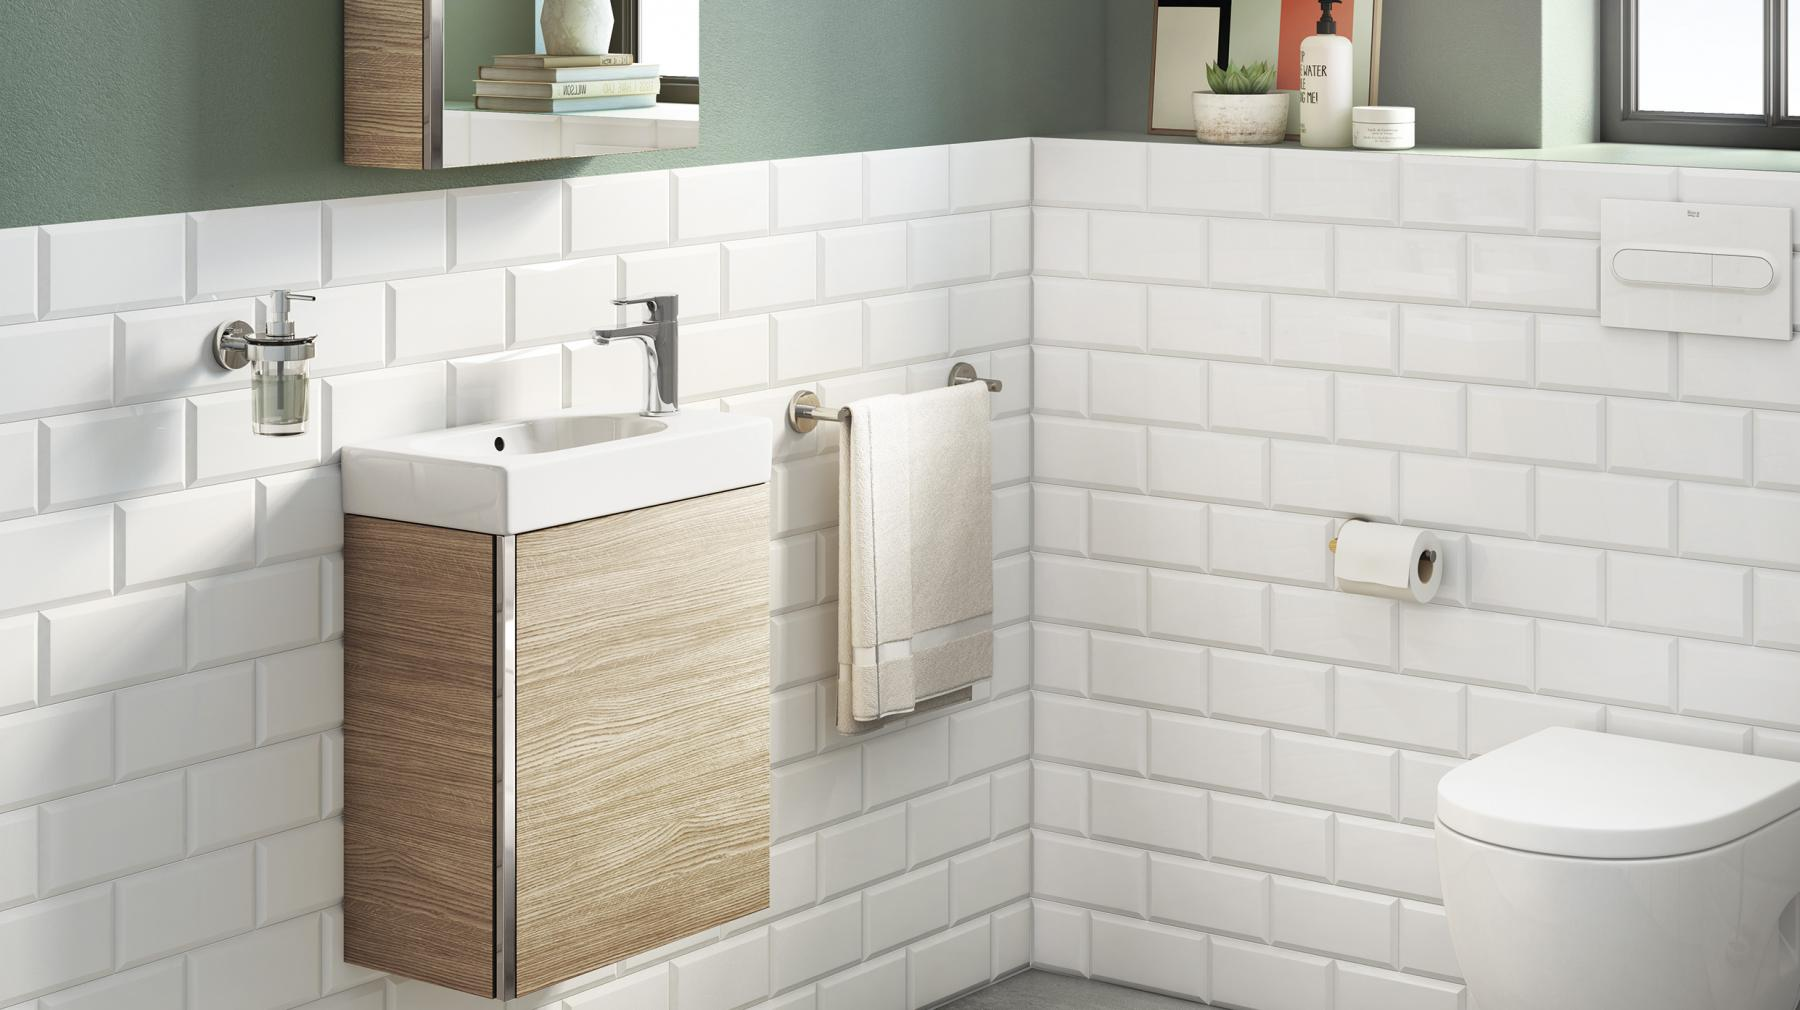 Is it possible to innovate with a classic? Subway tiles